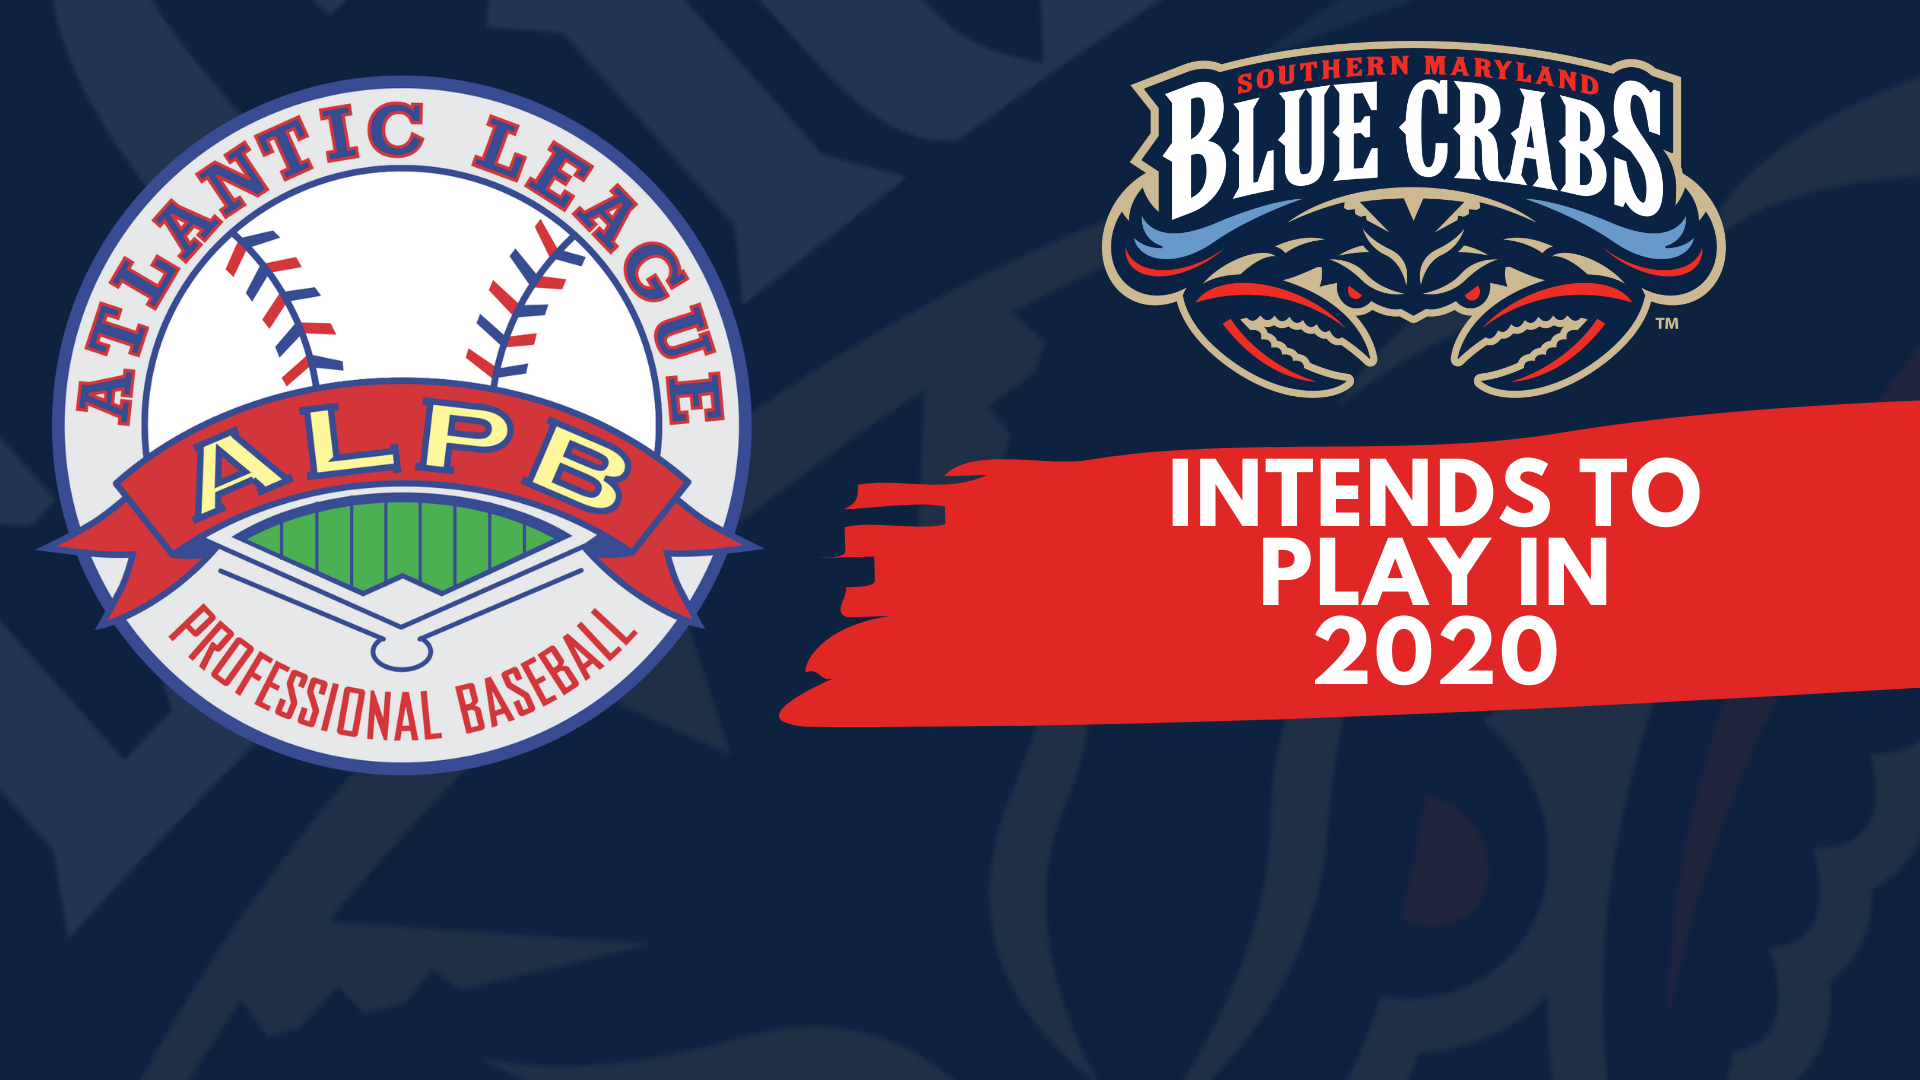 ATLANTIC LEAGUE INTENDS TO PLAY